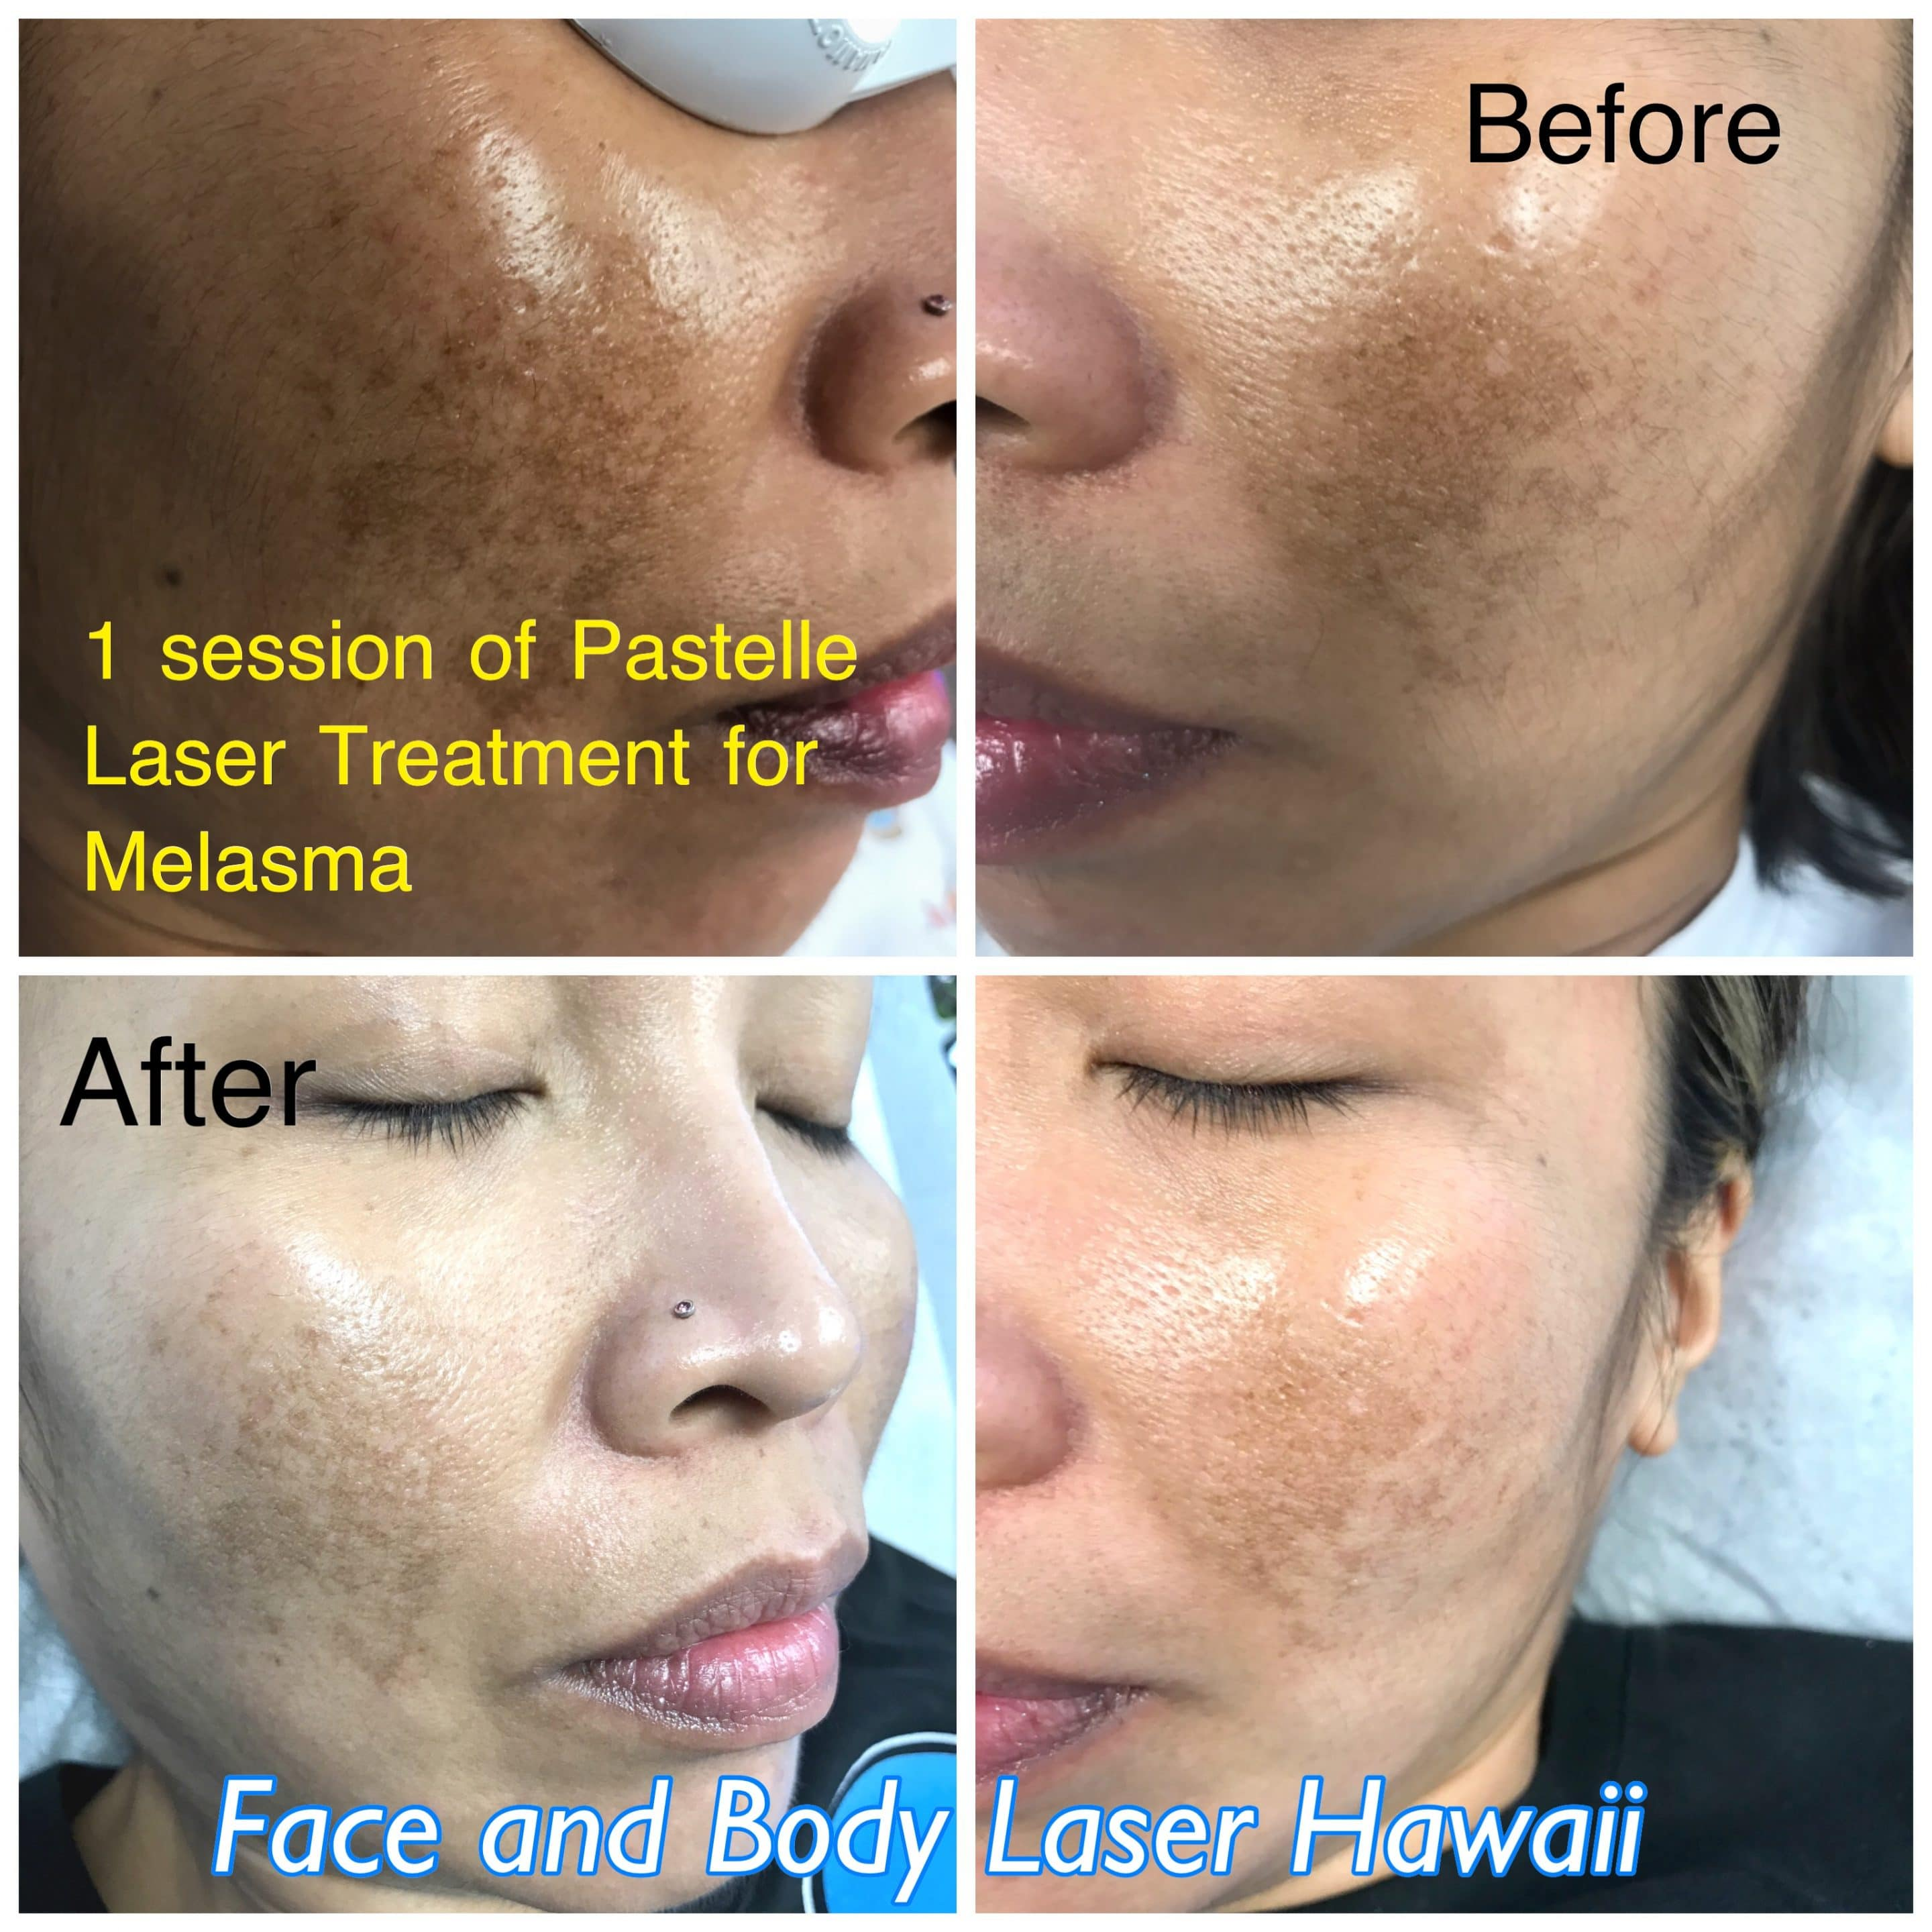 1 session of Pastelle Laser Treatment for Melasma